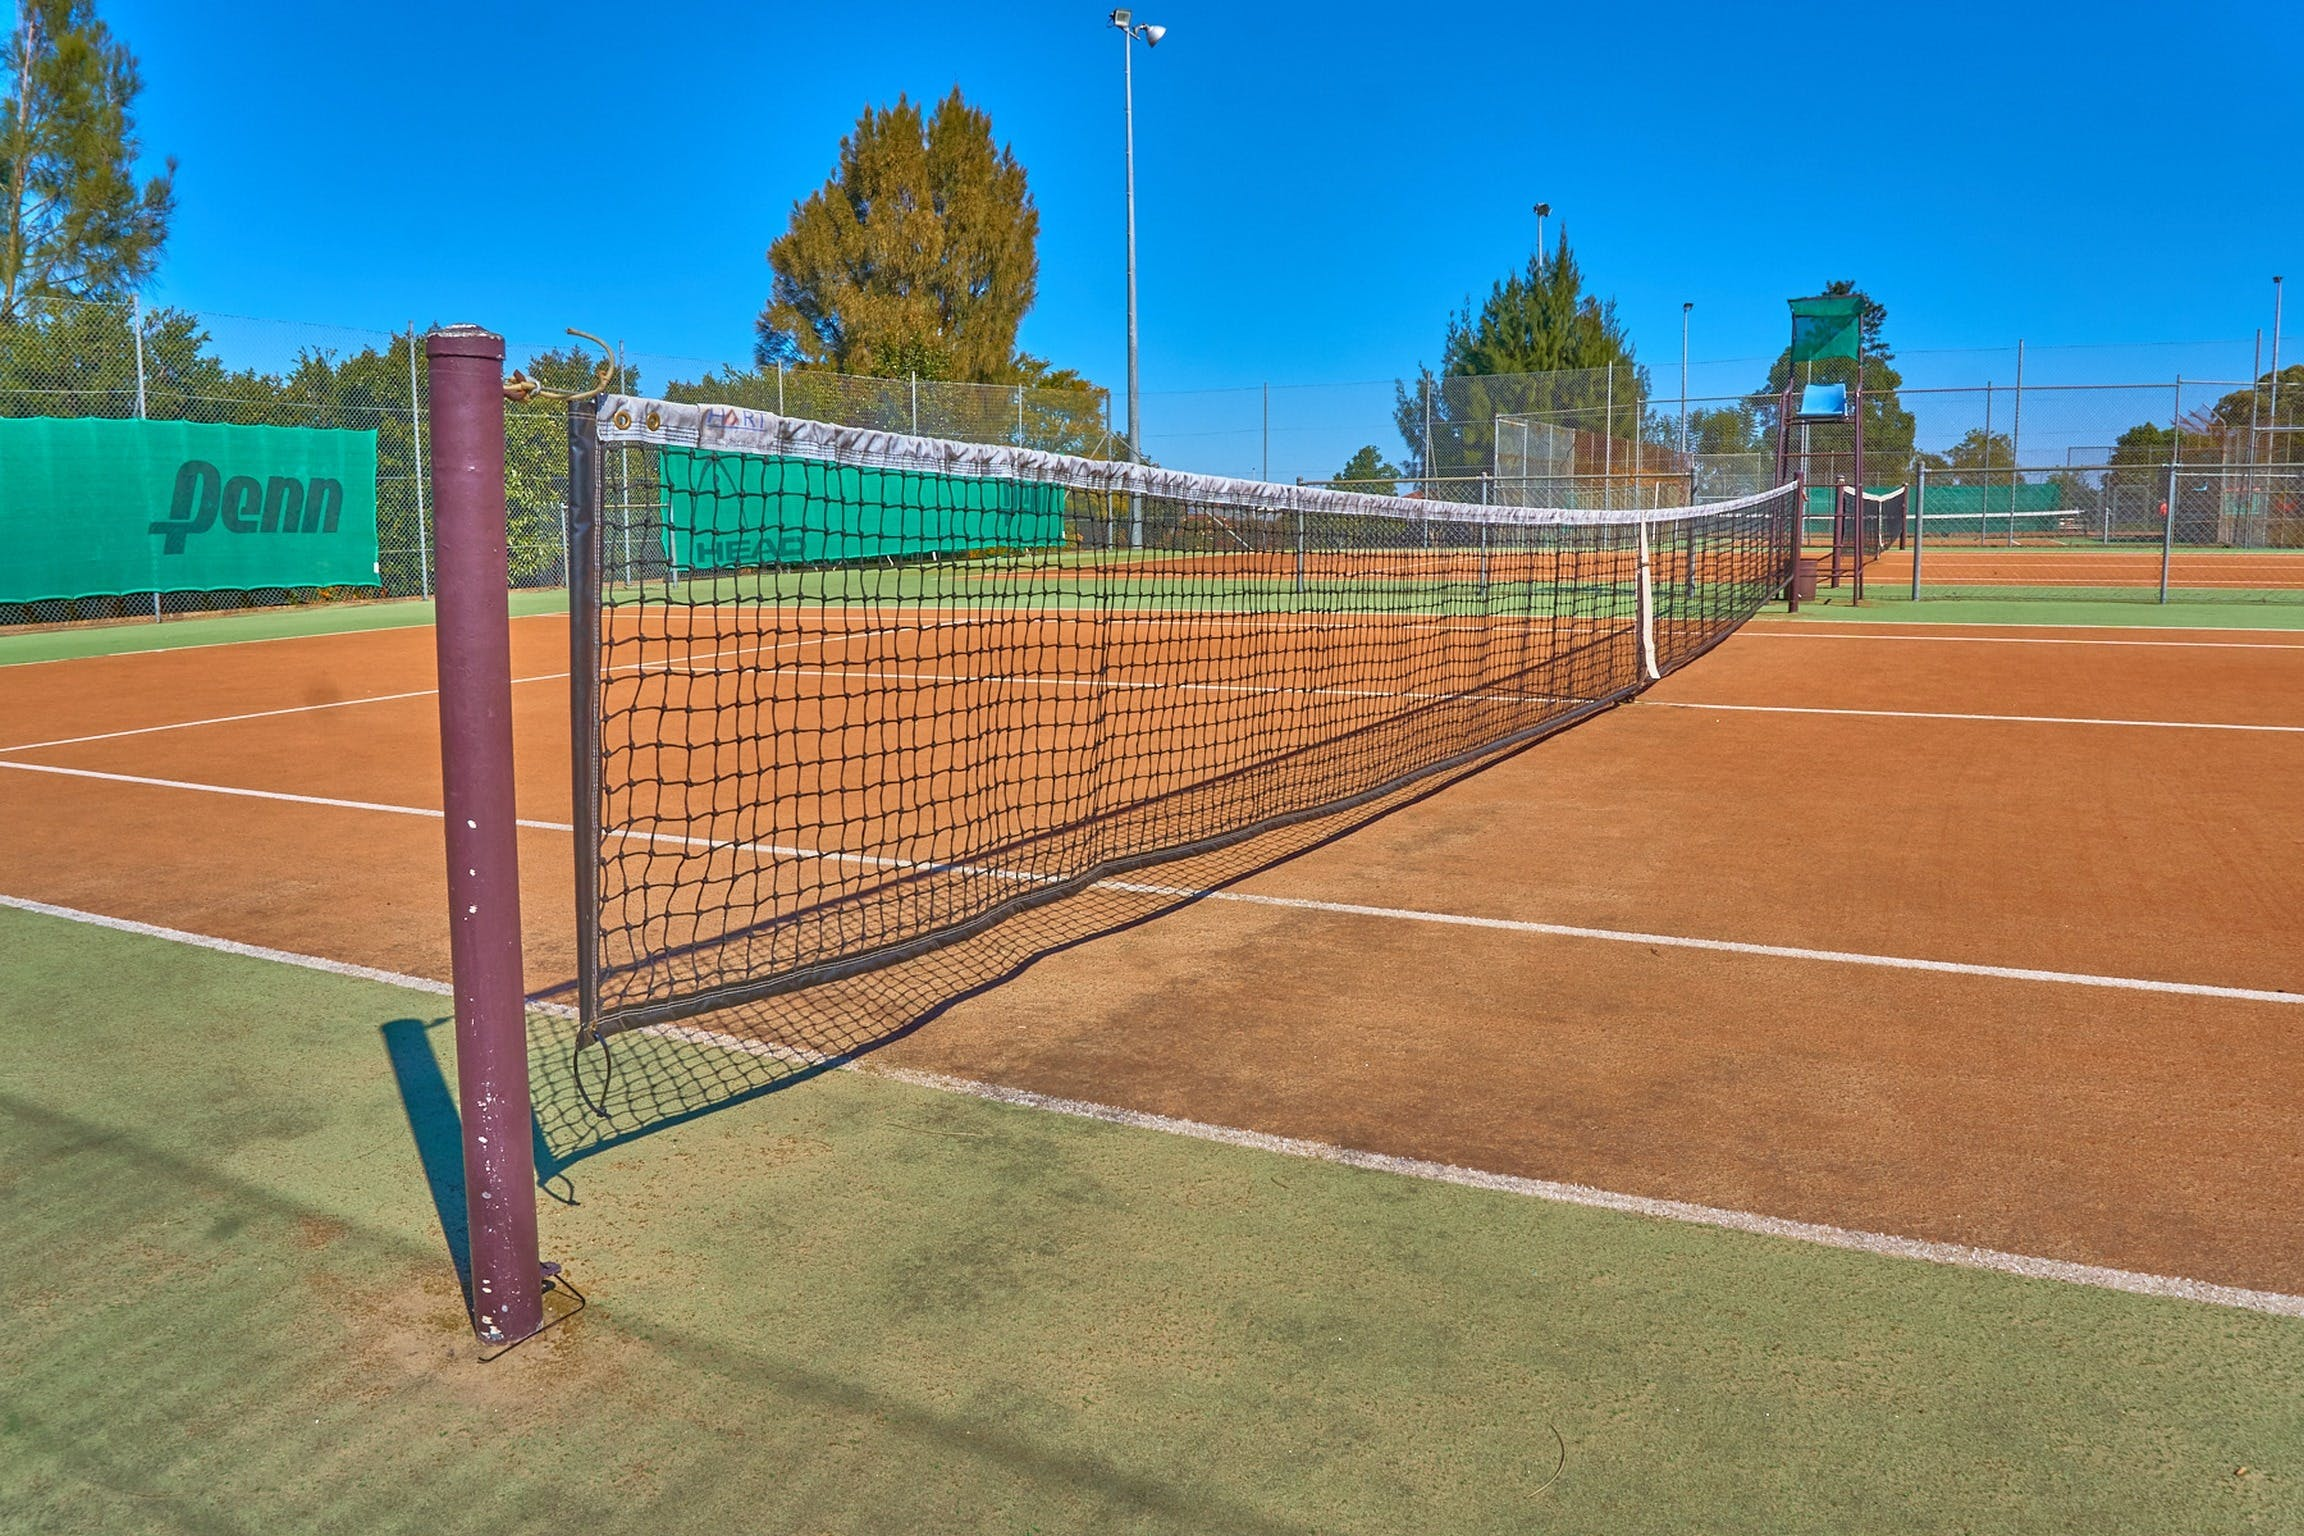 Raworth Tennis Centre - Phillip Island Accommodation